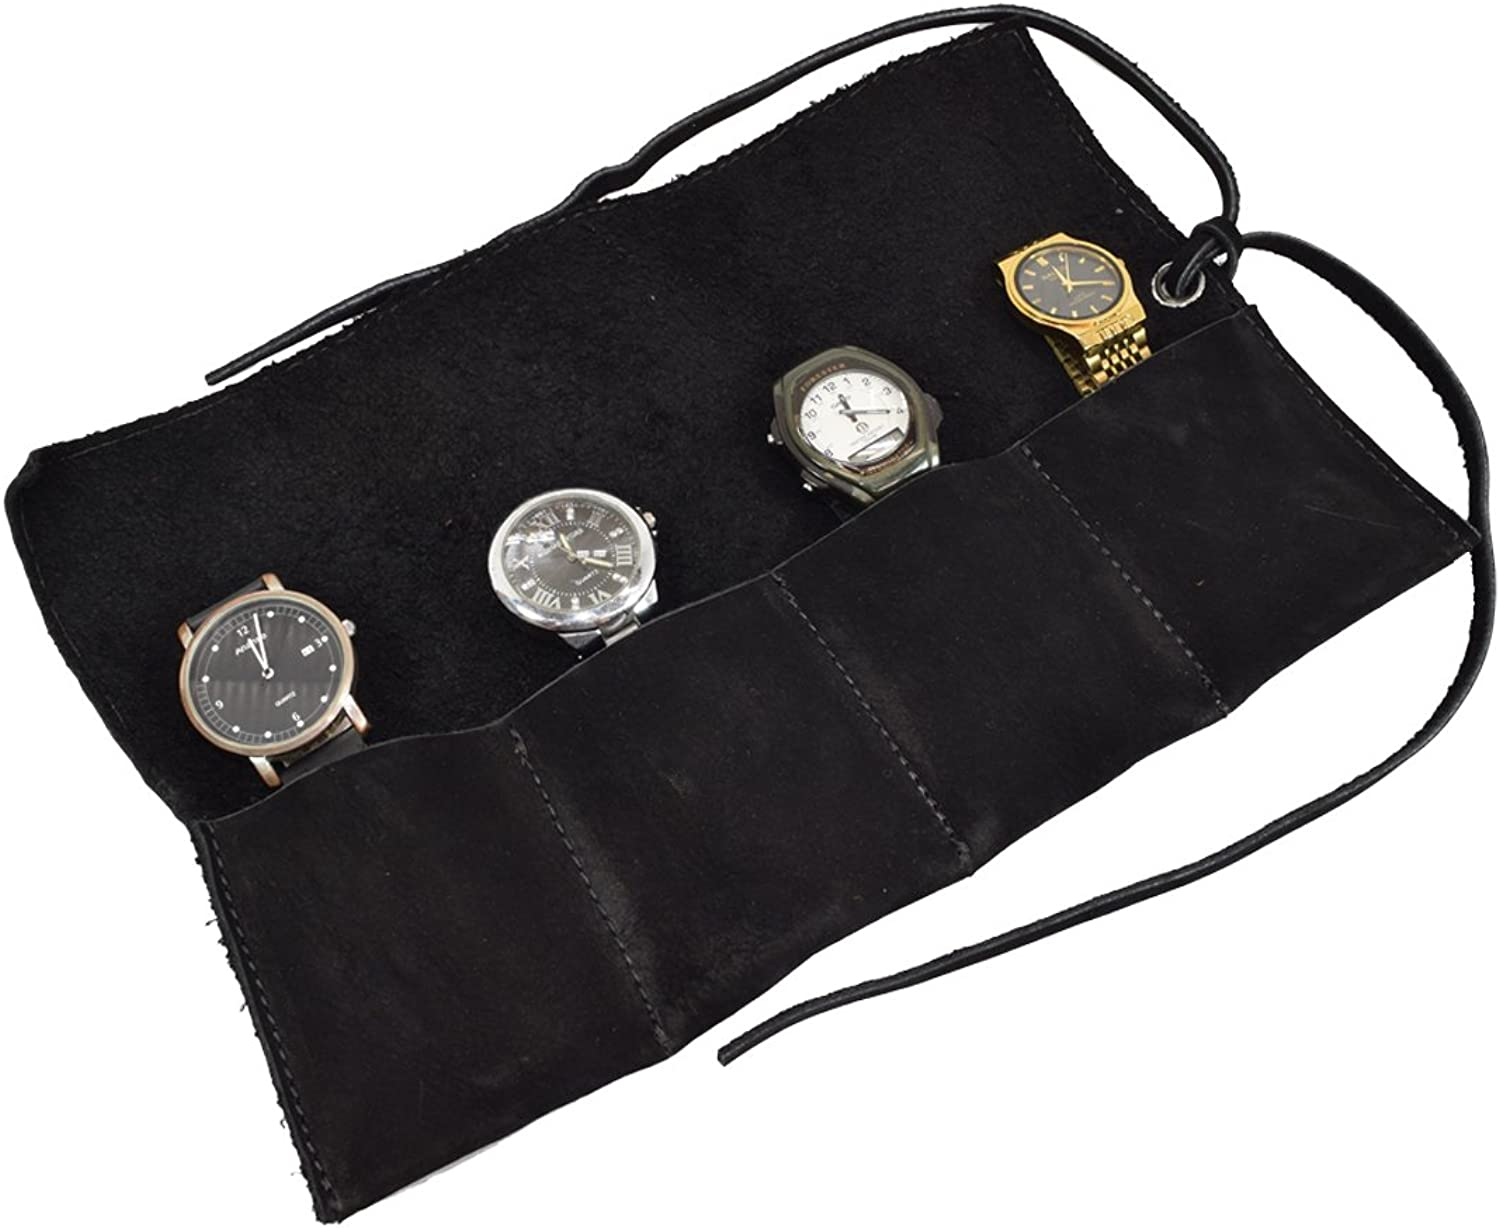 Hide & Drink Soft Leather Travel Watch Roll Organizer Holds Up To 4 Watches Handmade by Charcoal Suede